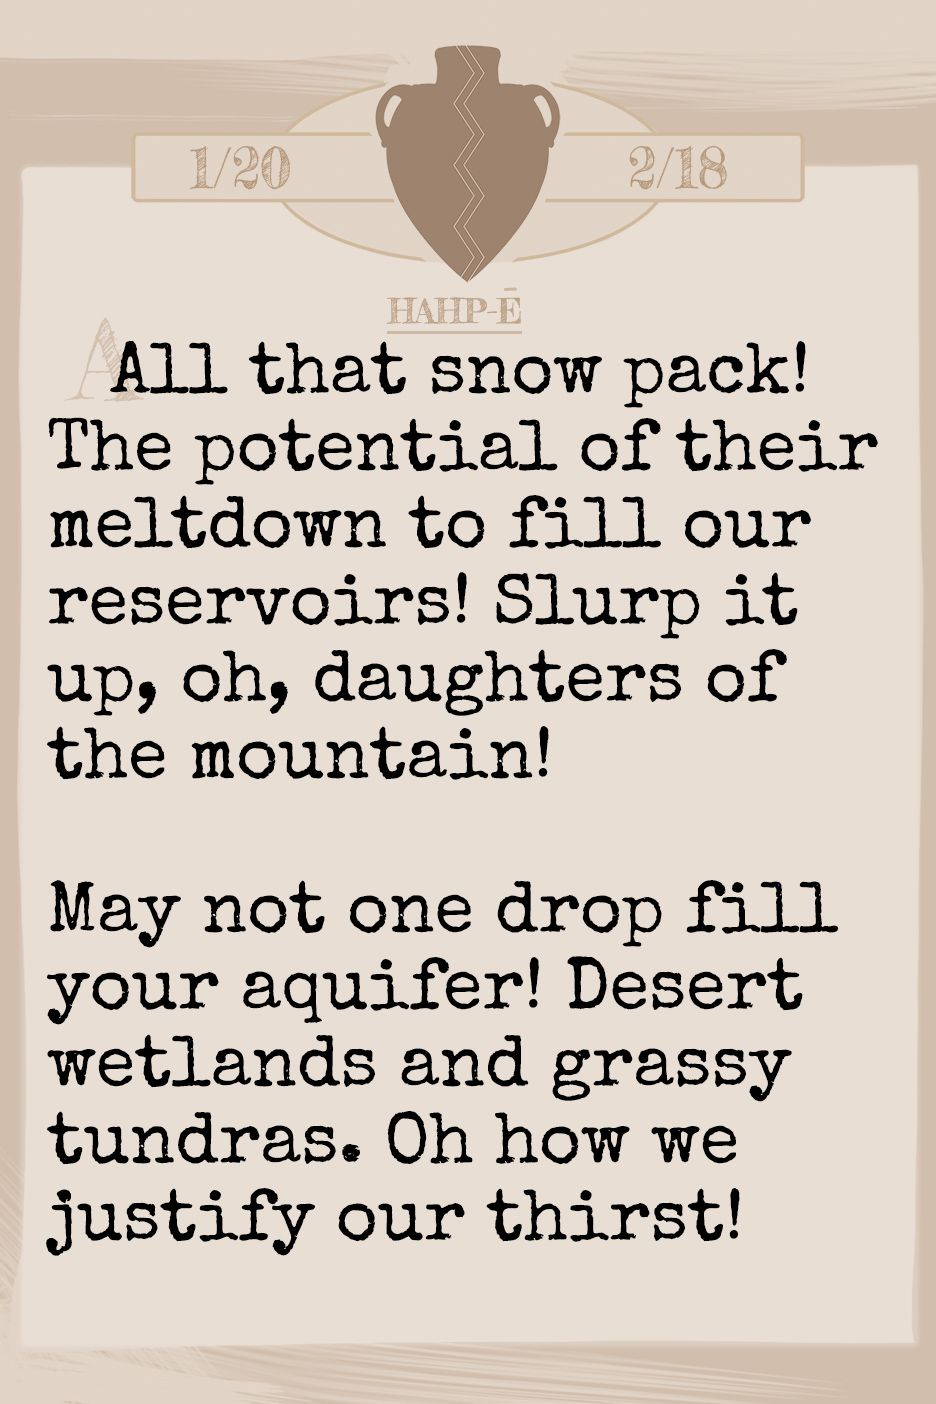 December 2019 Horoscope (Old sign: Aquarius) All that snow pack! The potential of their meltdown to fill our reservoirs! Slurp it up, oh, daughters of the mountain! May not one drop fill your aquifer! Desert wetlands and grassy tundras. Oh how we justify our thirst!